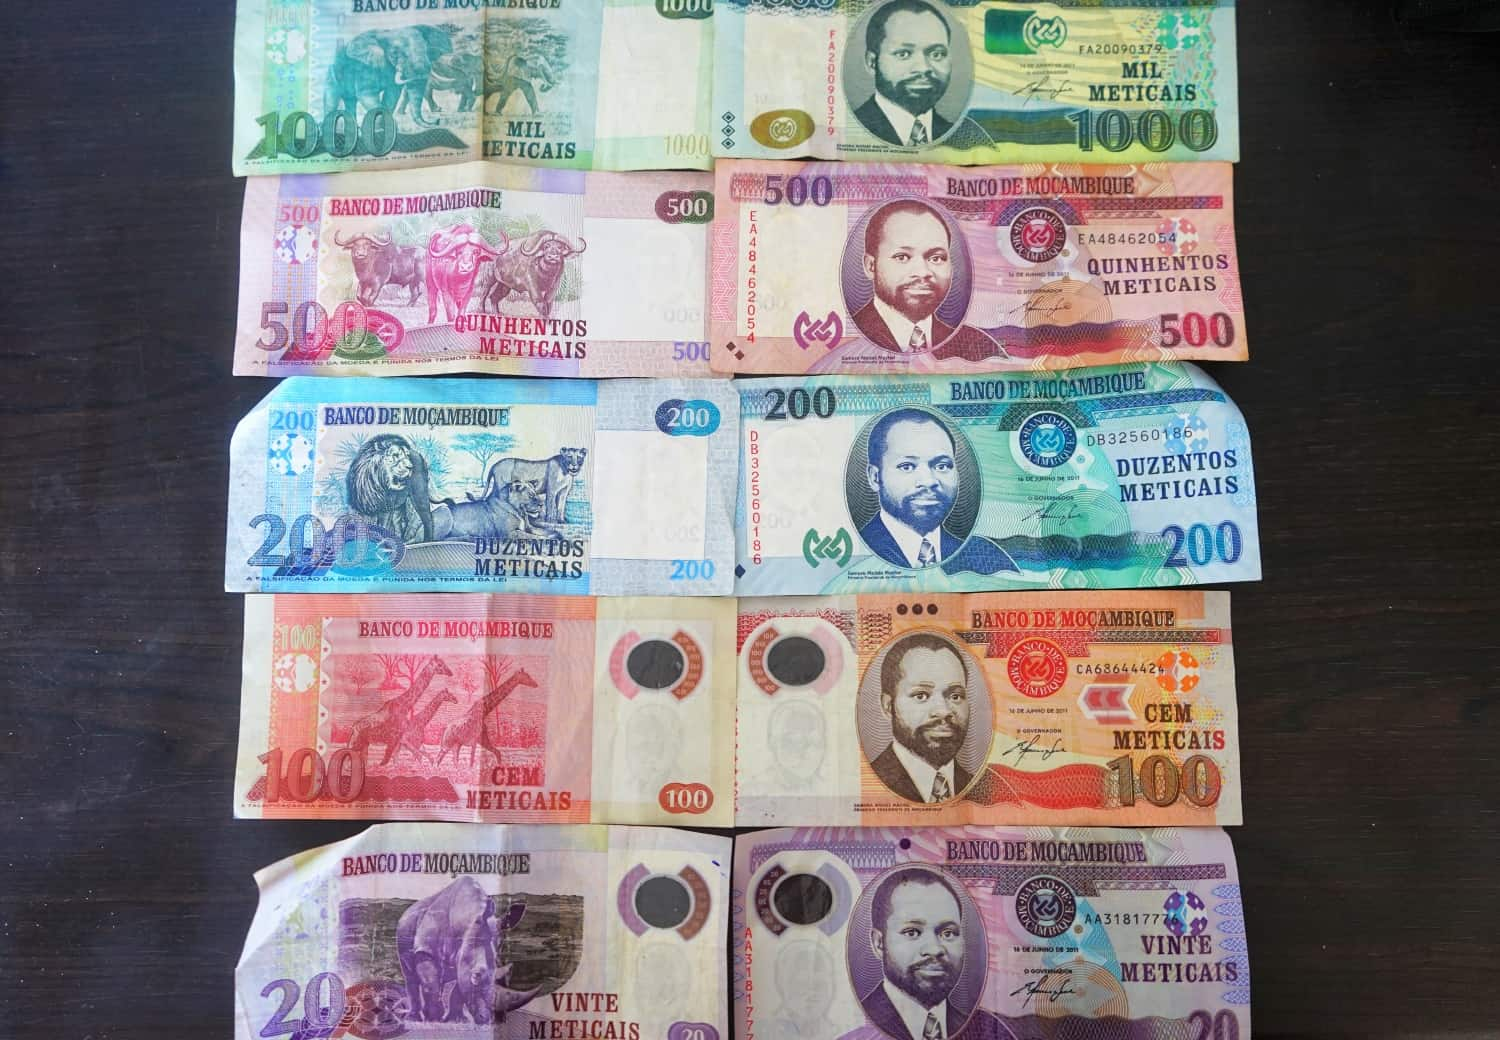 Mozambican metacais currency